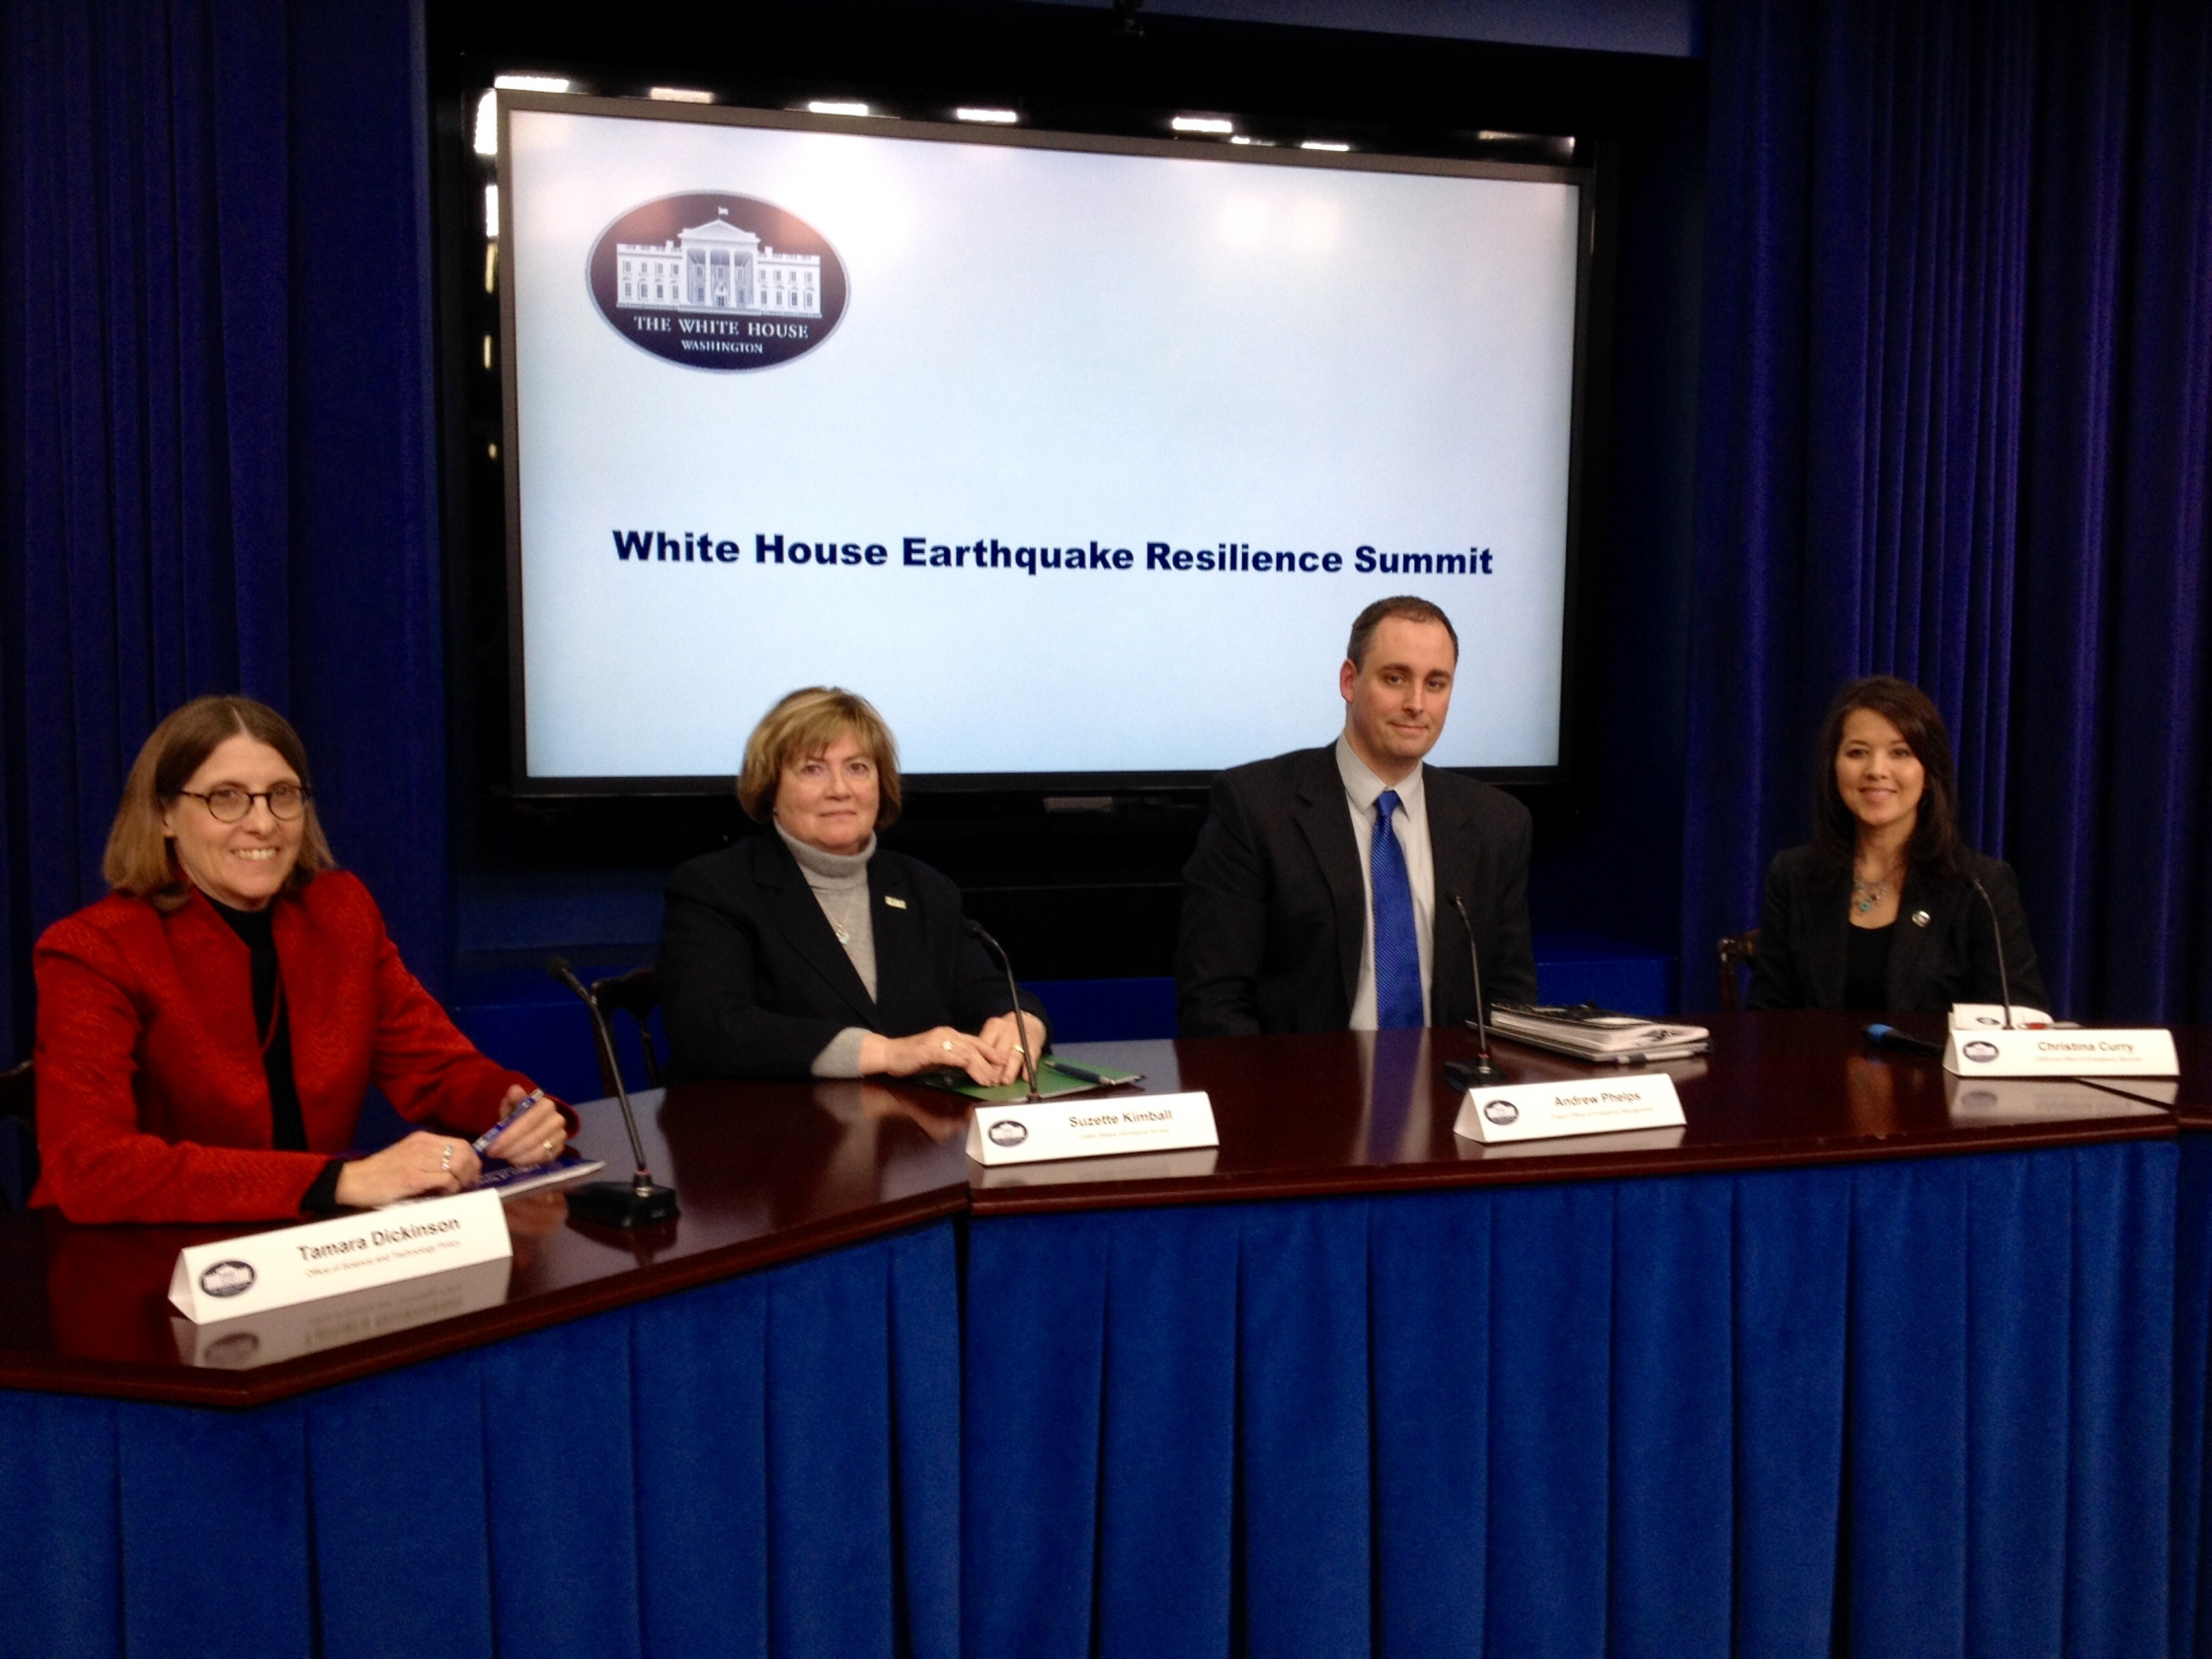 Tamara Dickinson, far left, of the White House Office of Science and Technology Policy with panelists, left to right, Suzette Kimball, USGS Director;  Andrew Phelps, Oregon Office of Emergency Management; and Christina Curry of eh California Office of Emergency Services.